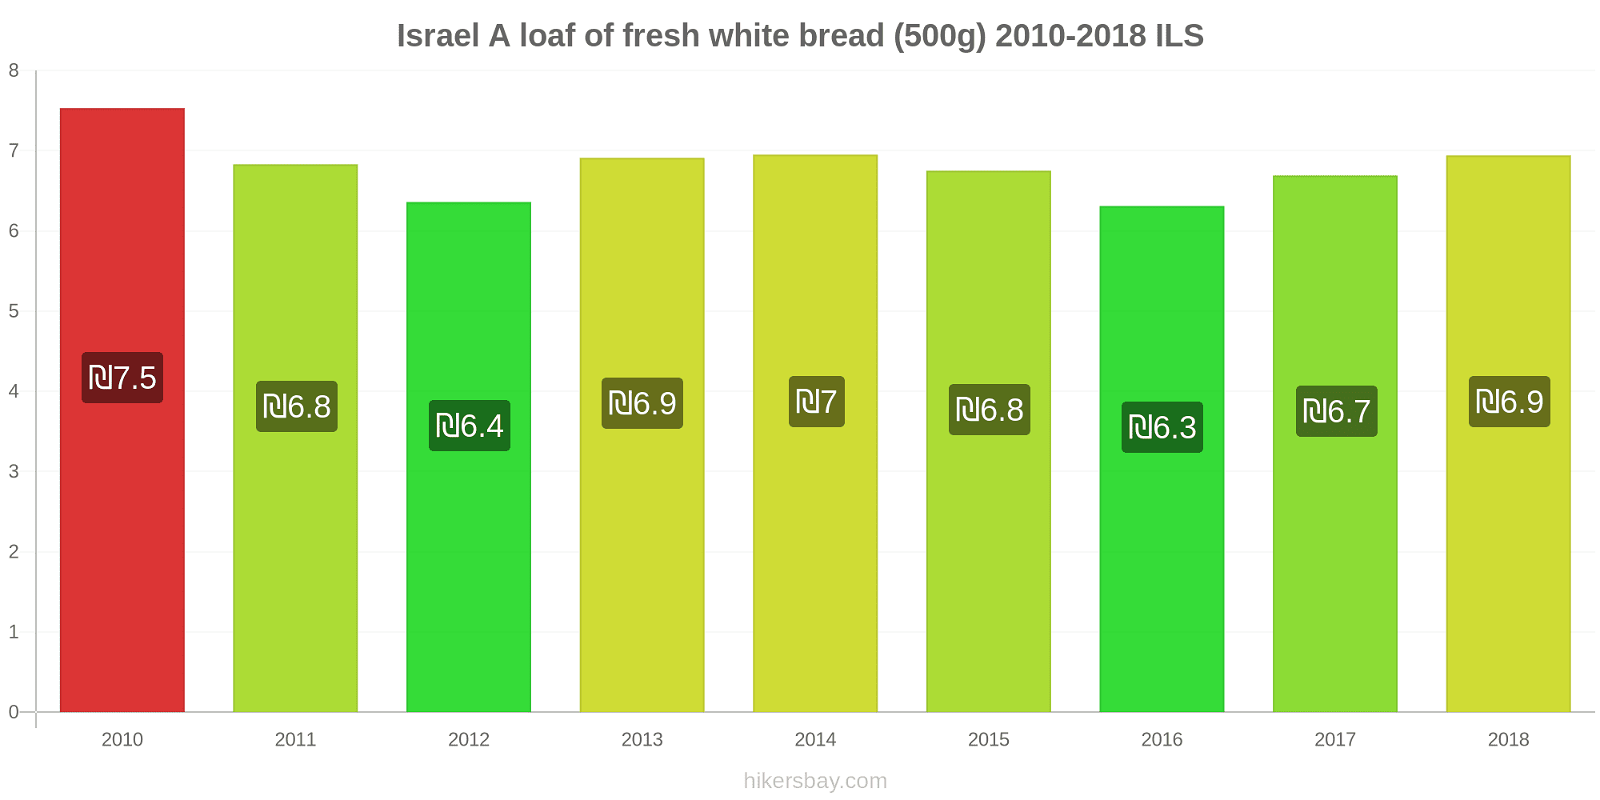 Israel price changes A loaf of fresh white bread (500g) hikersbay.com